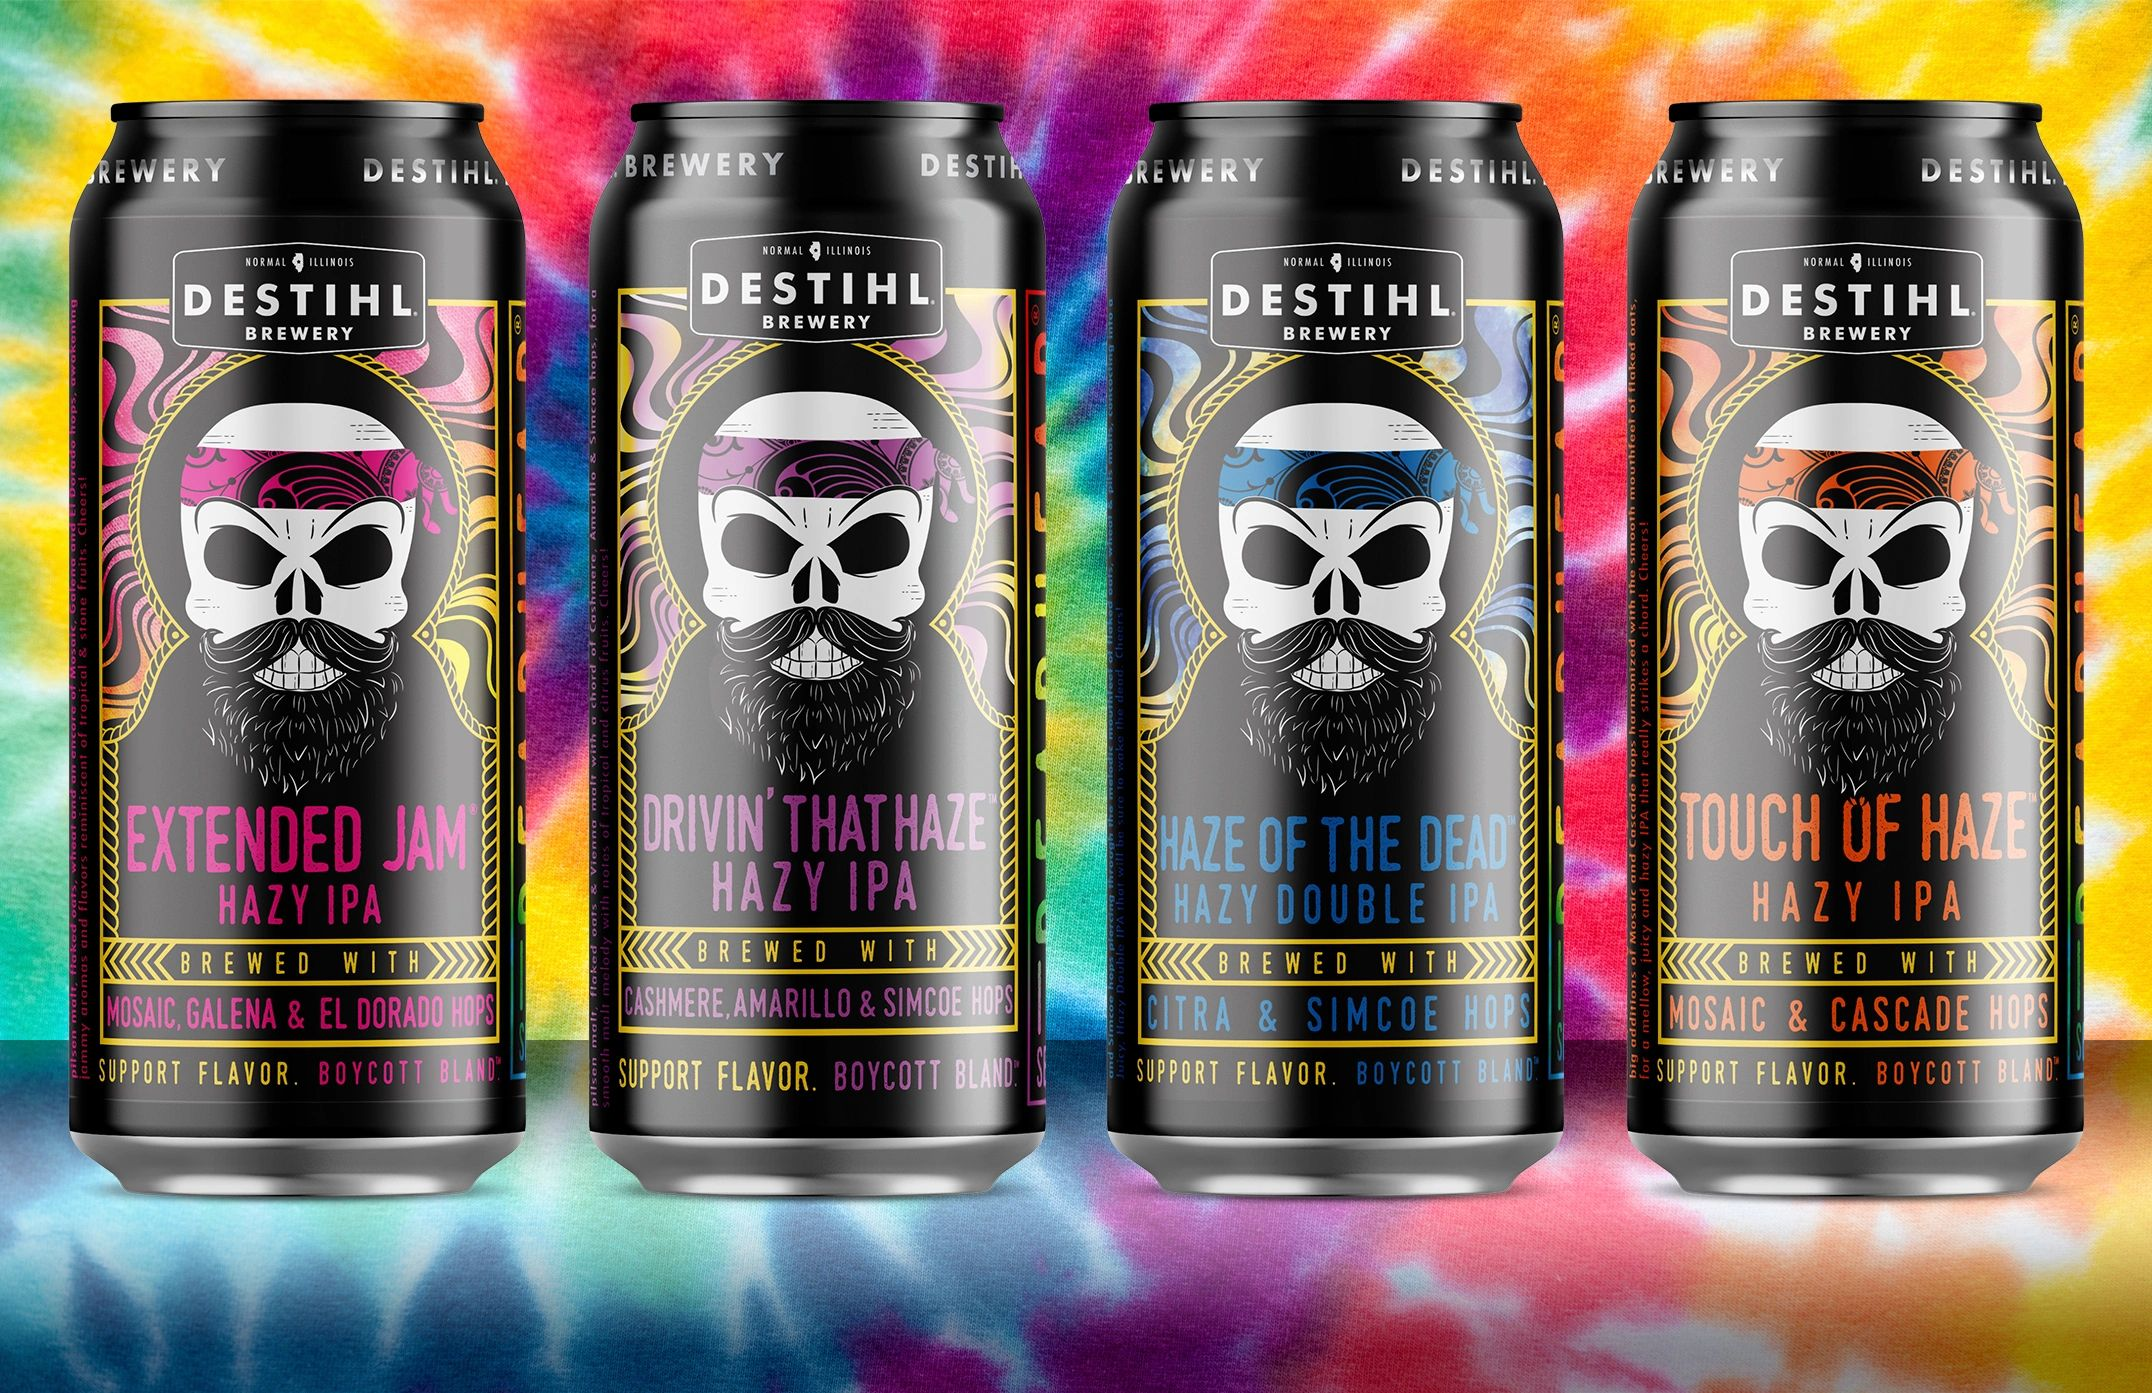 An image of DESTIHL Brewery's DeadHead® IPA Series cans over a tie-dye background.